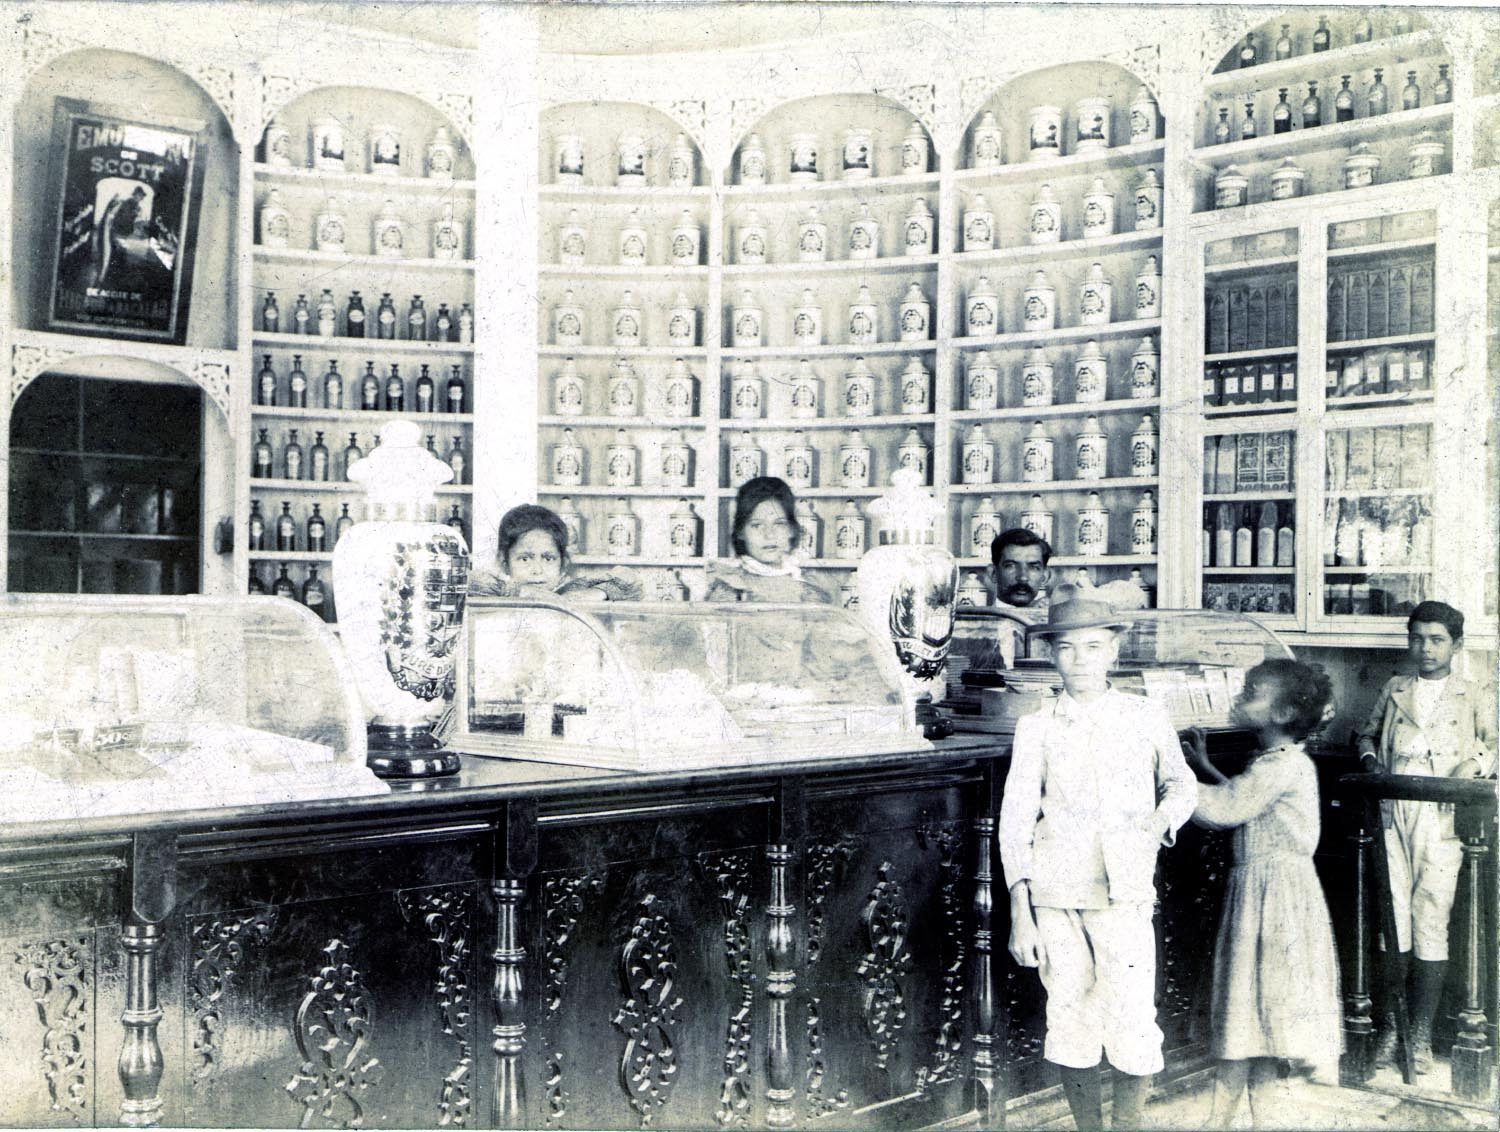 Black and white photograph of the interior of a pharmacy.